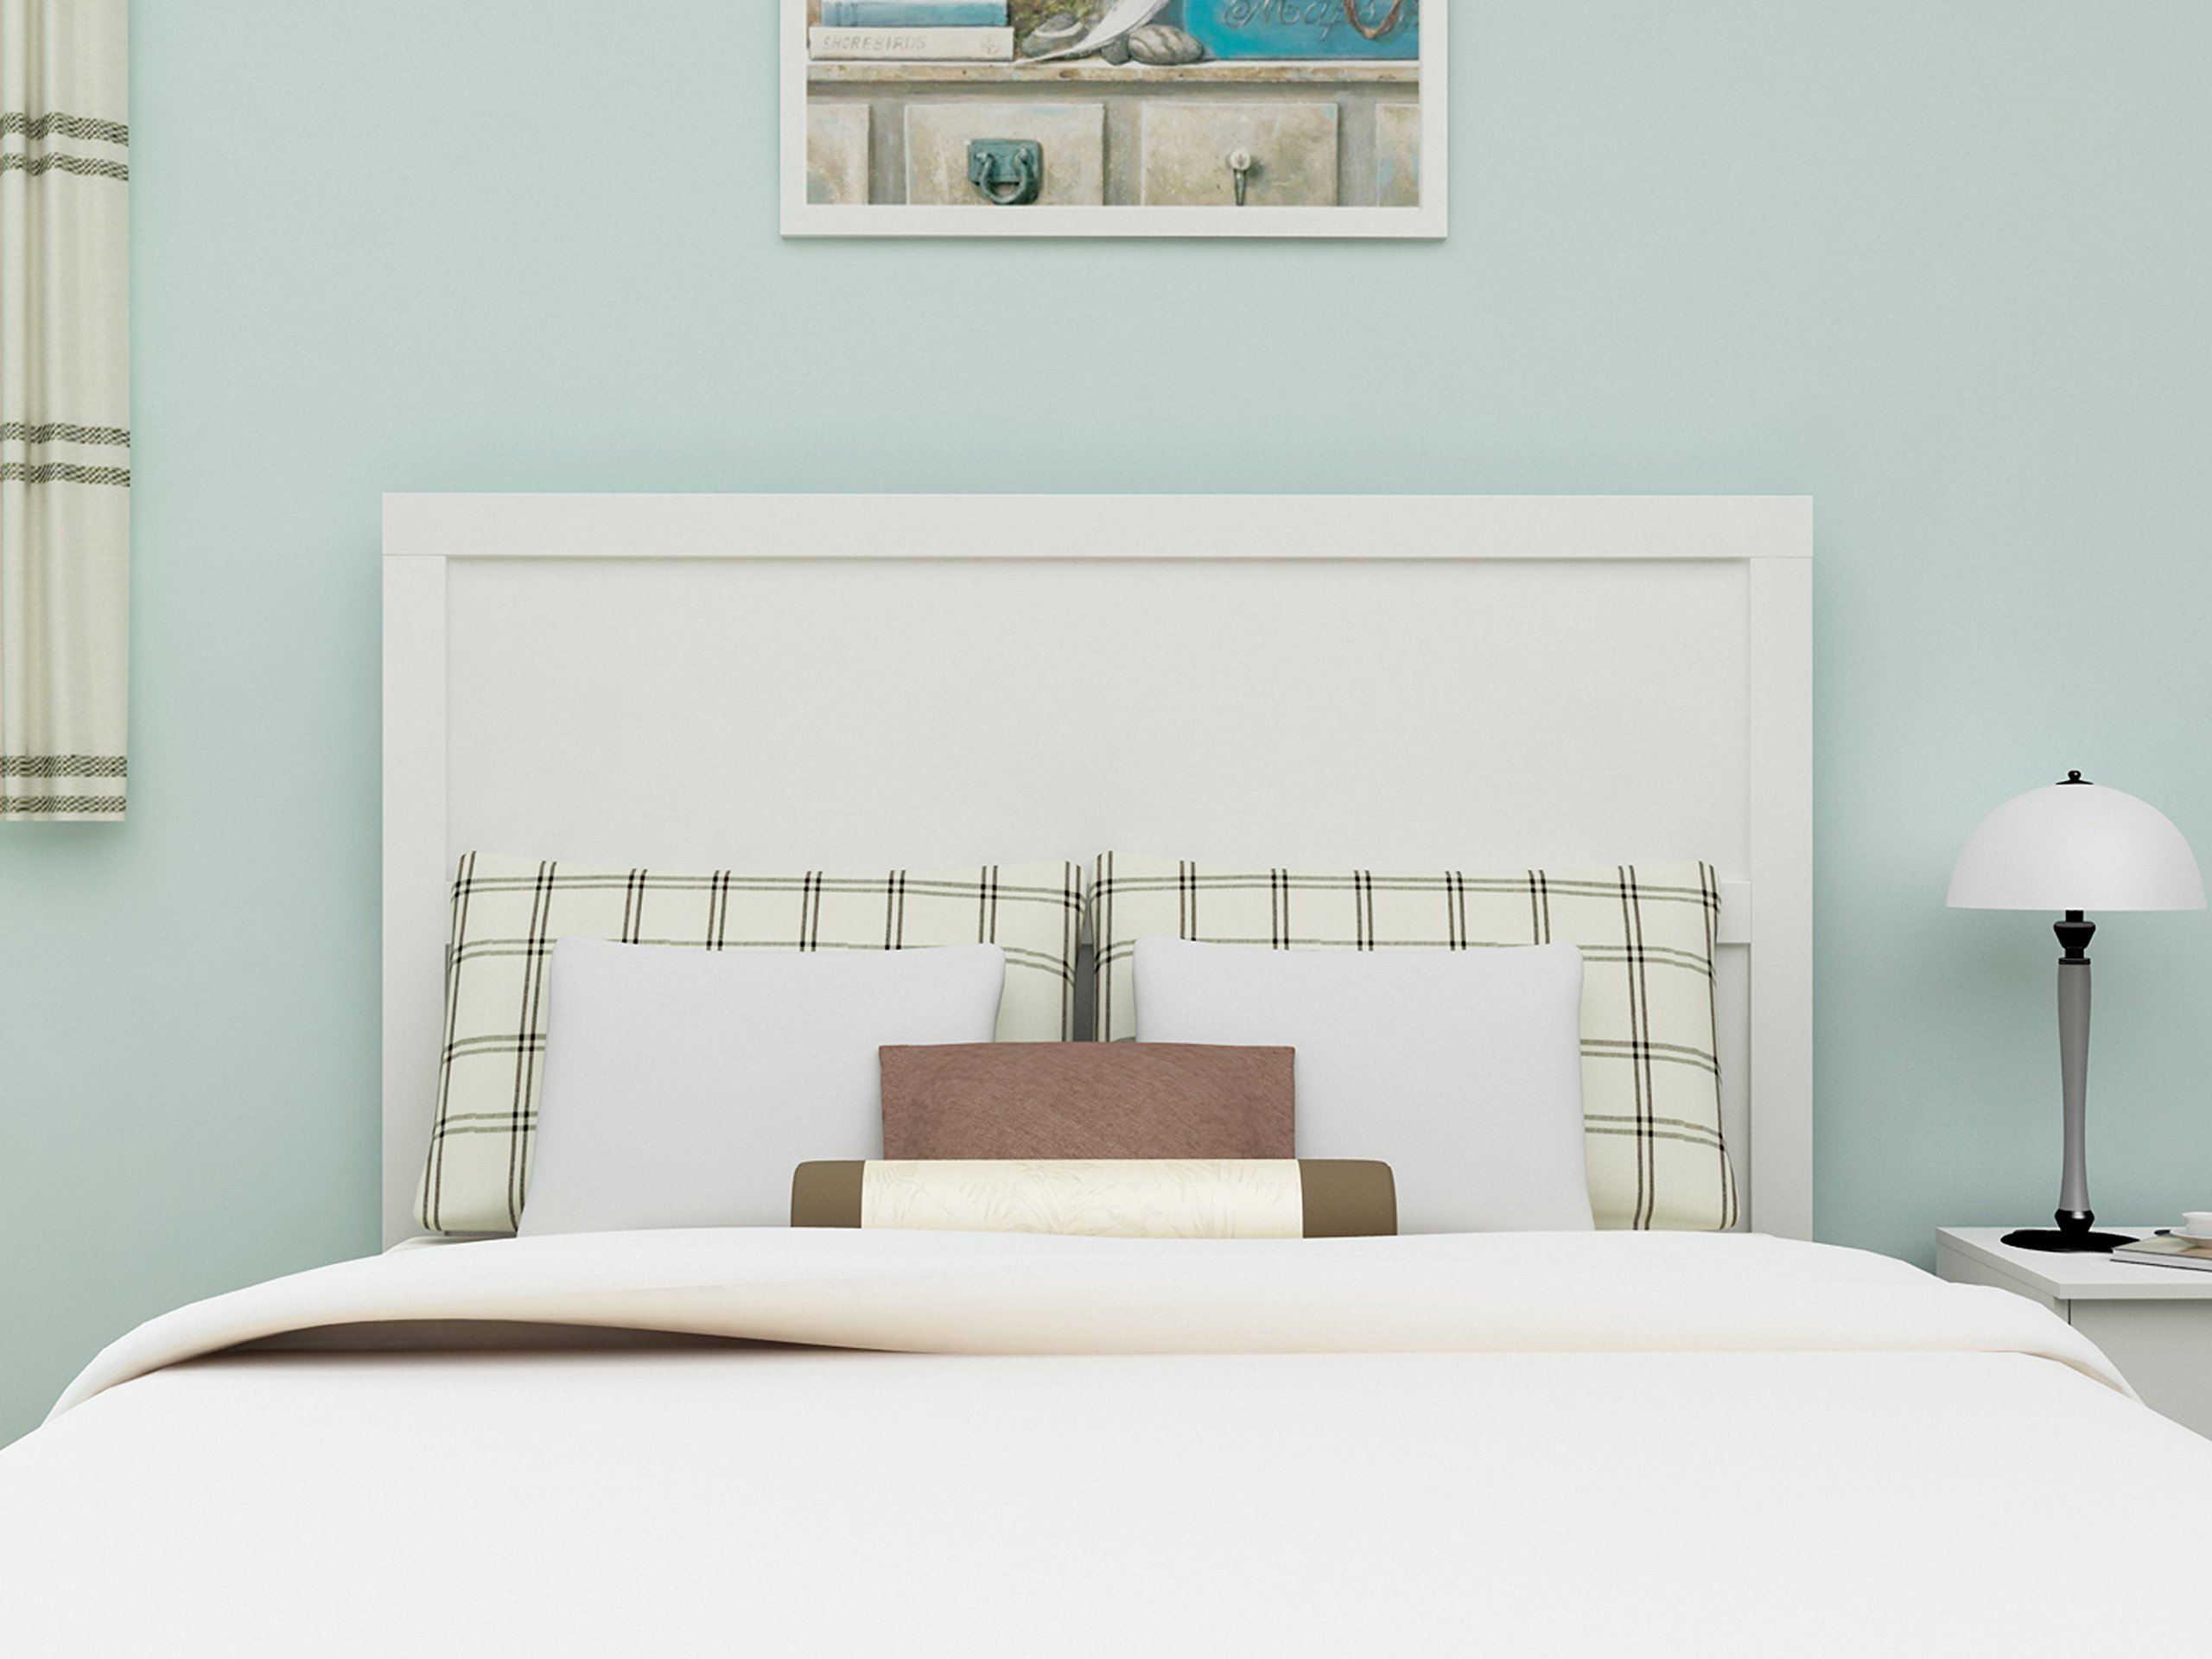 Homestar EB209134W5 Finch Queen & Full Headboard, 62.99 x 51.14 x 1.85'', Antique White by Home Star